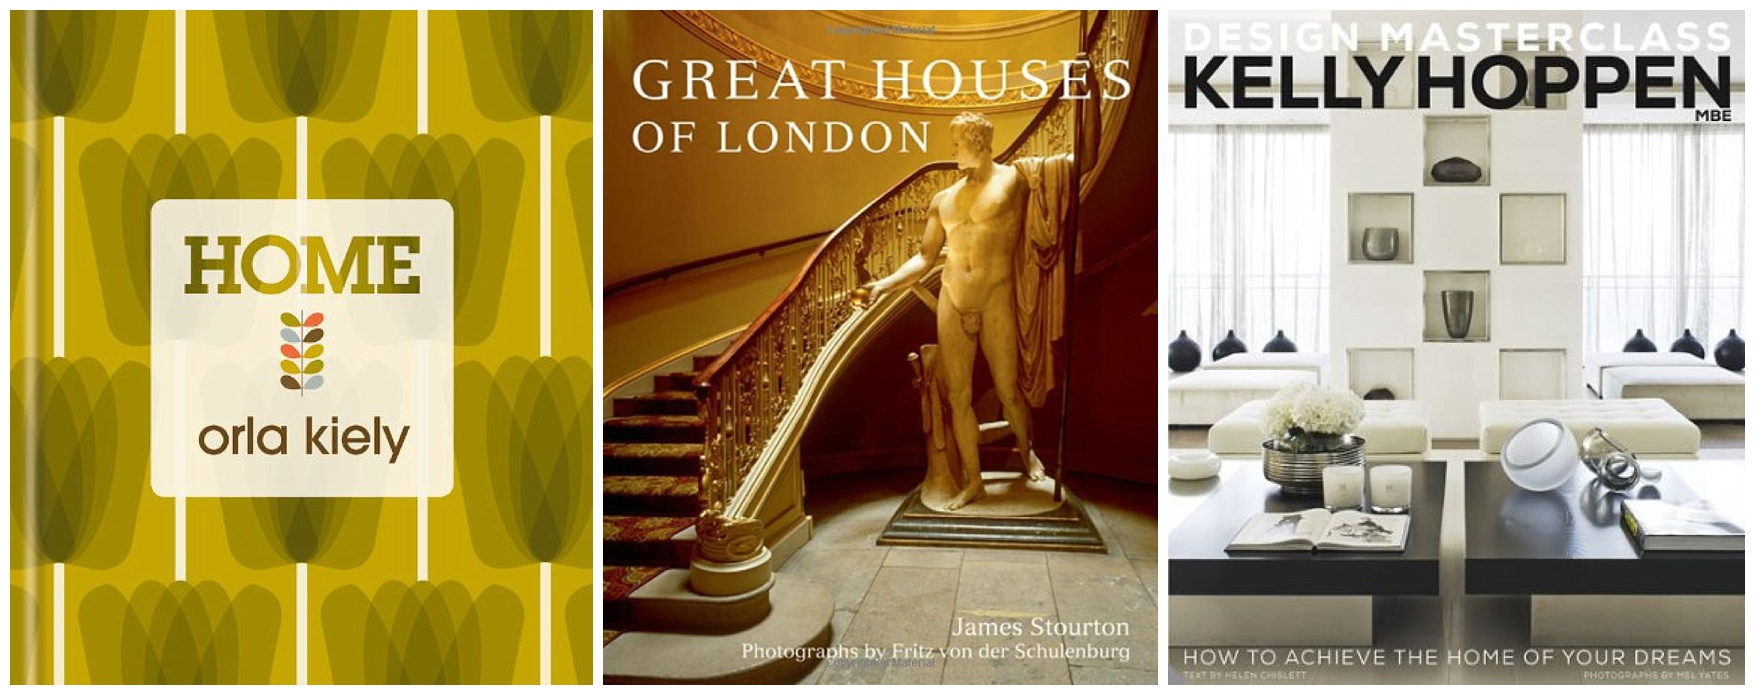 Orla Kiely Home, Great Houses of London, Kelly Hoppen Design Masterclass: How to Achieve the Home of Your Dreams